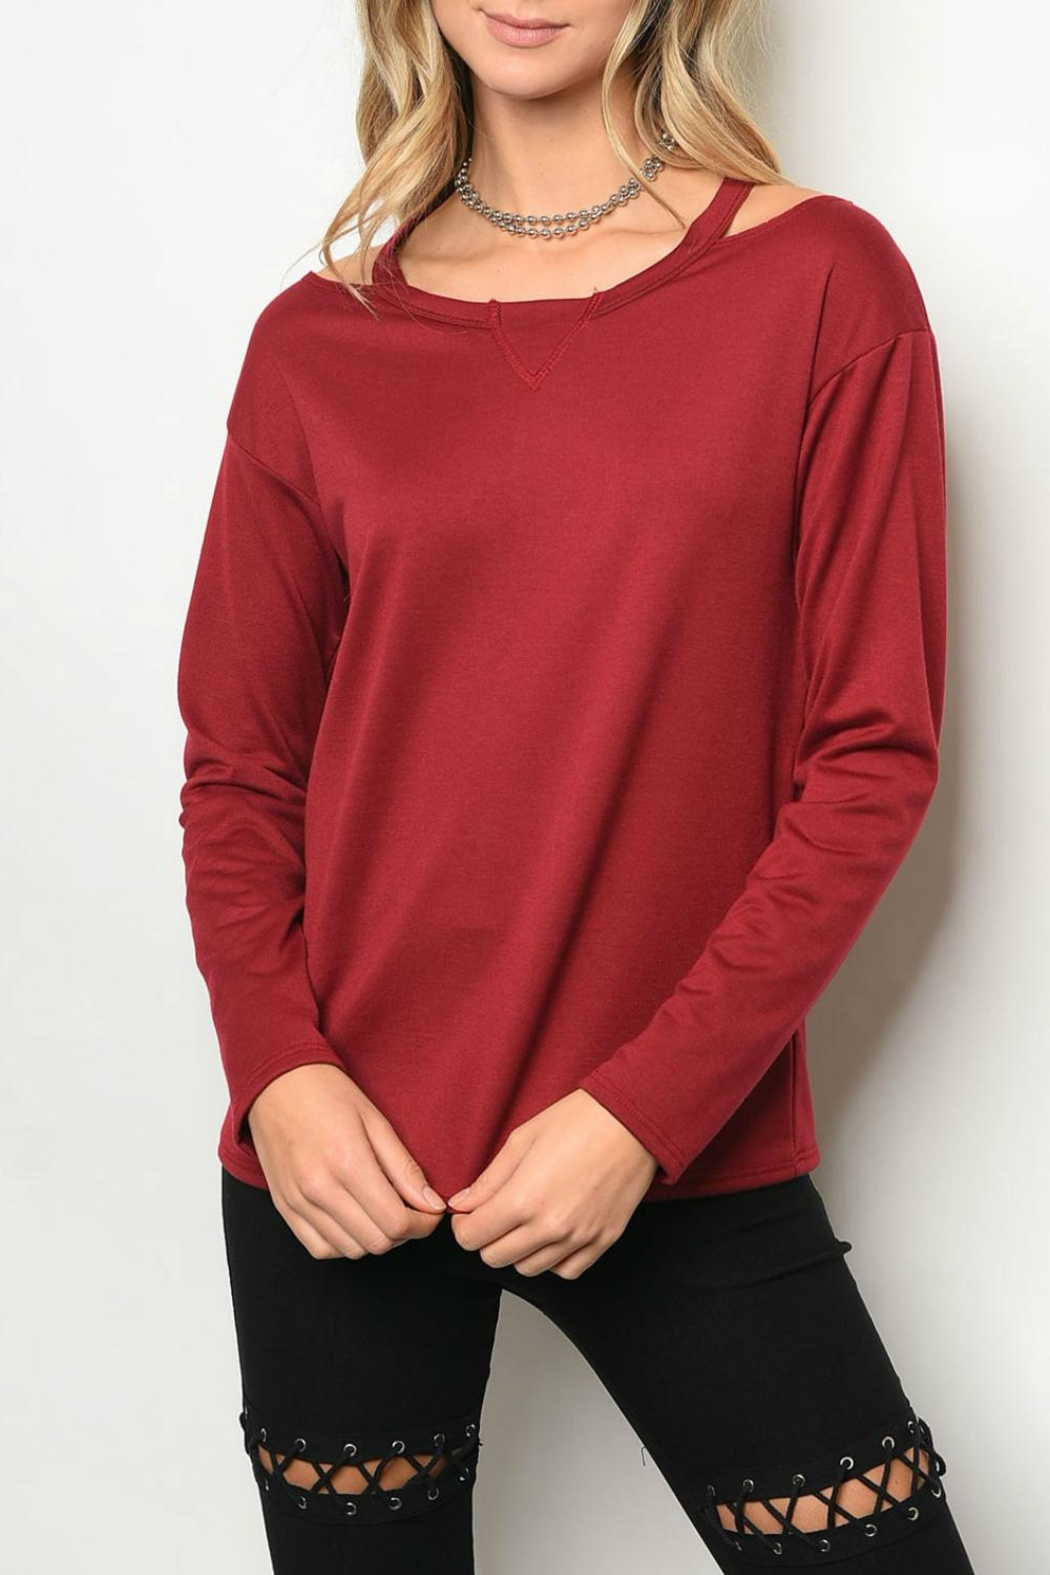 Sweet Claire Burgundy  Sweater - Main Image